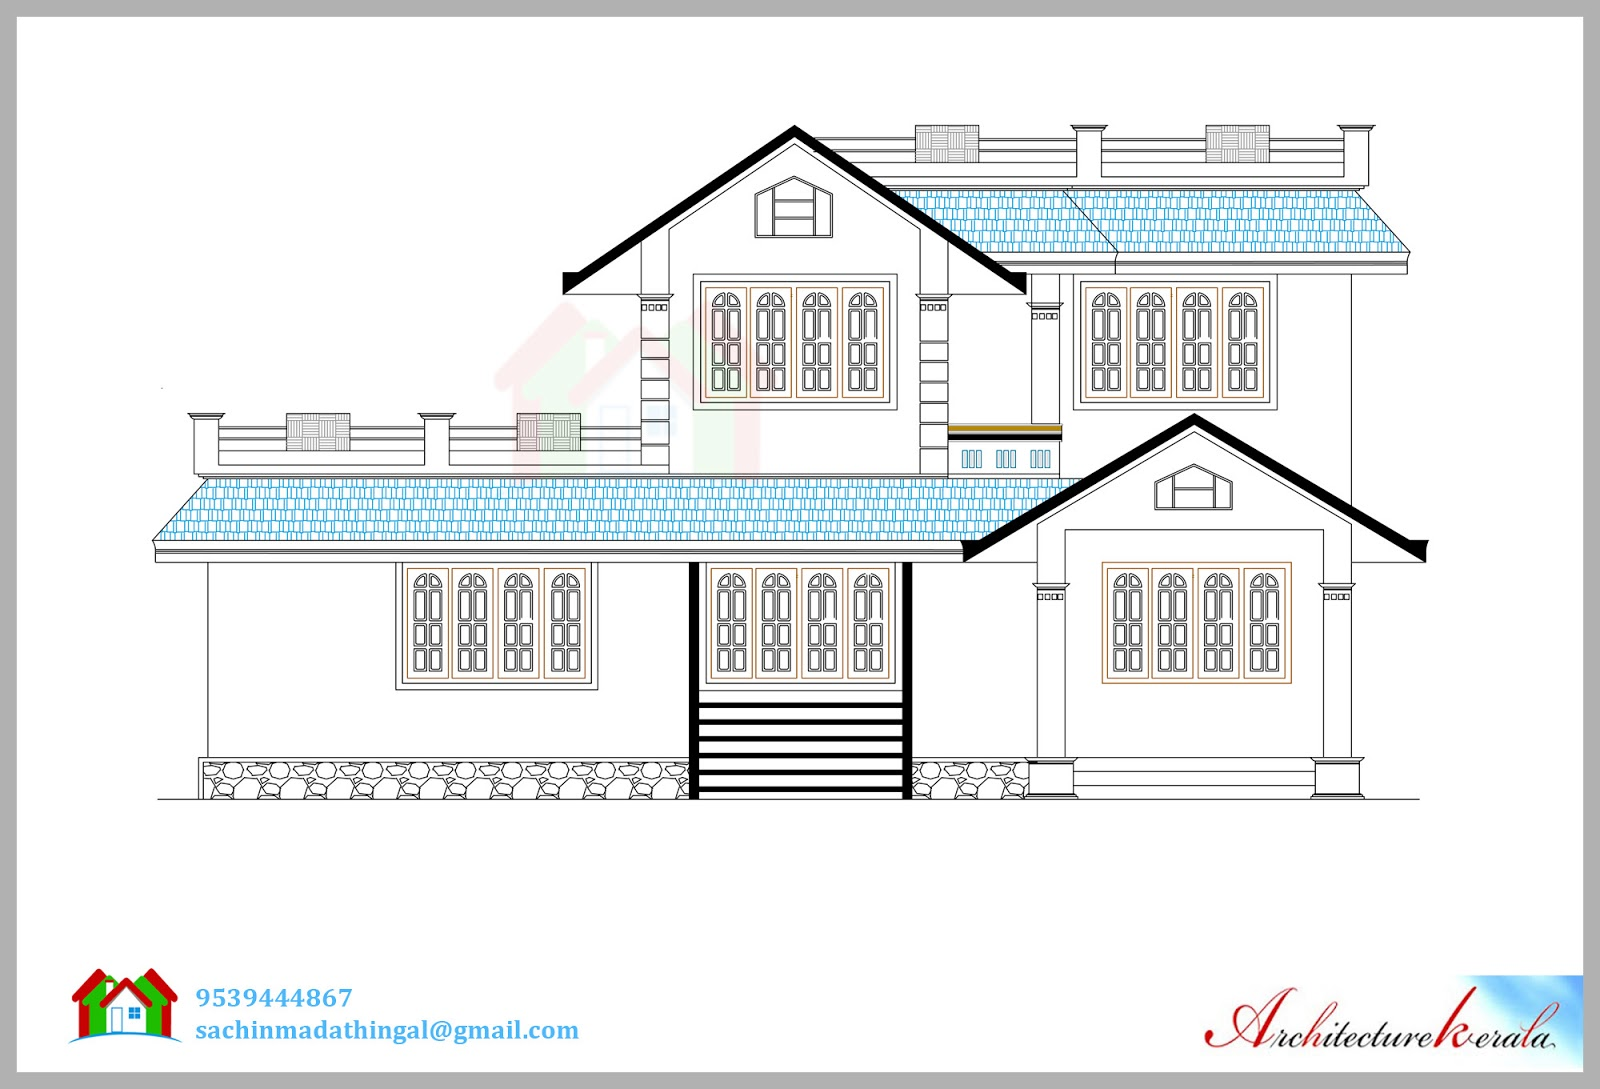 House Elevation Blueprint : Square feet house plan and its d elevation